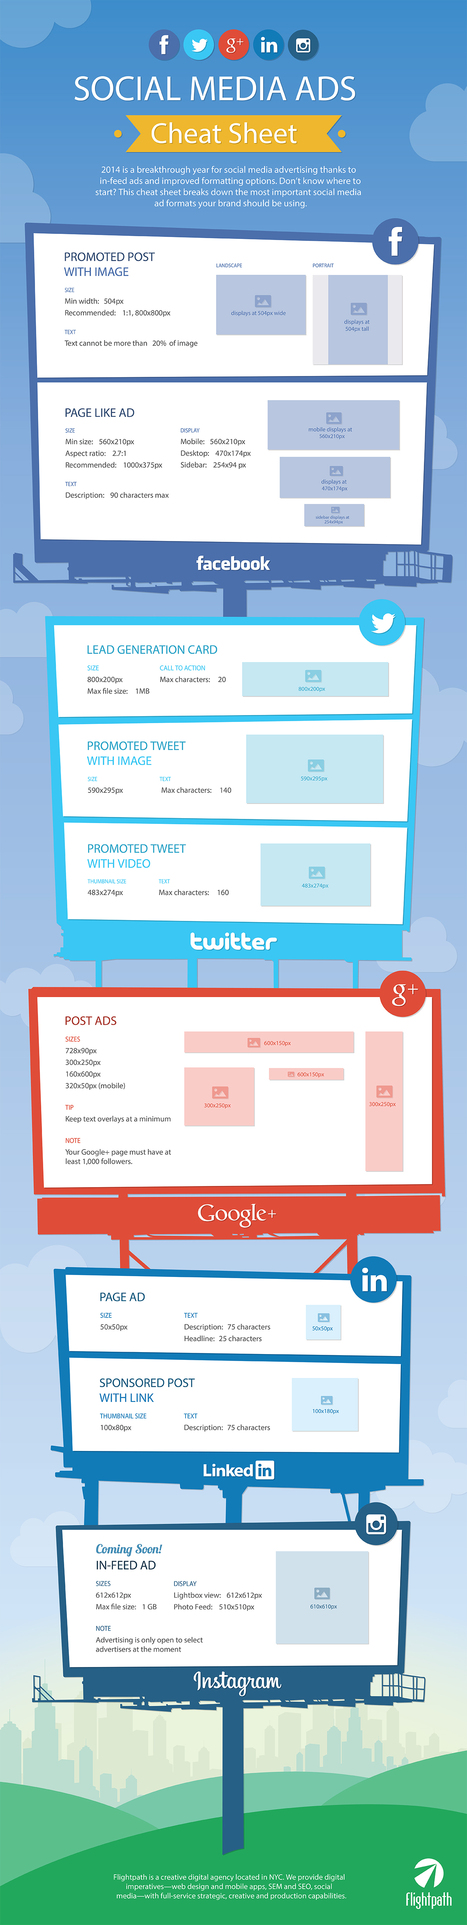 How To Format The Perfect Social Media Ads: A 2014 Cheat Sheet (Infographic) | Social media DAILY NEWS | Scoop.it